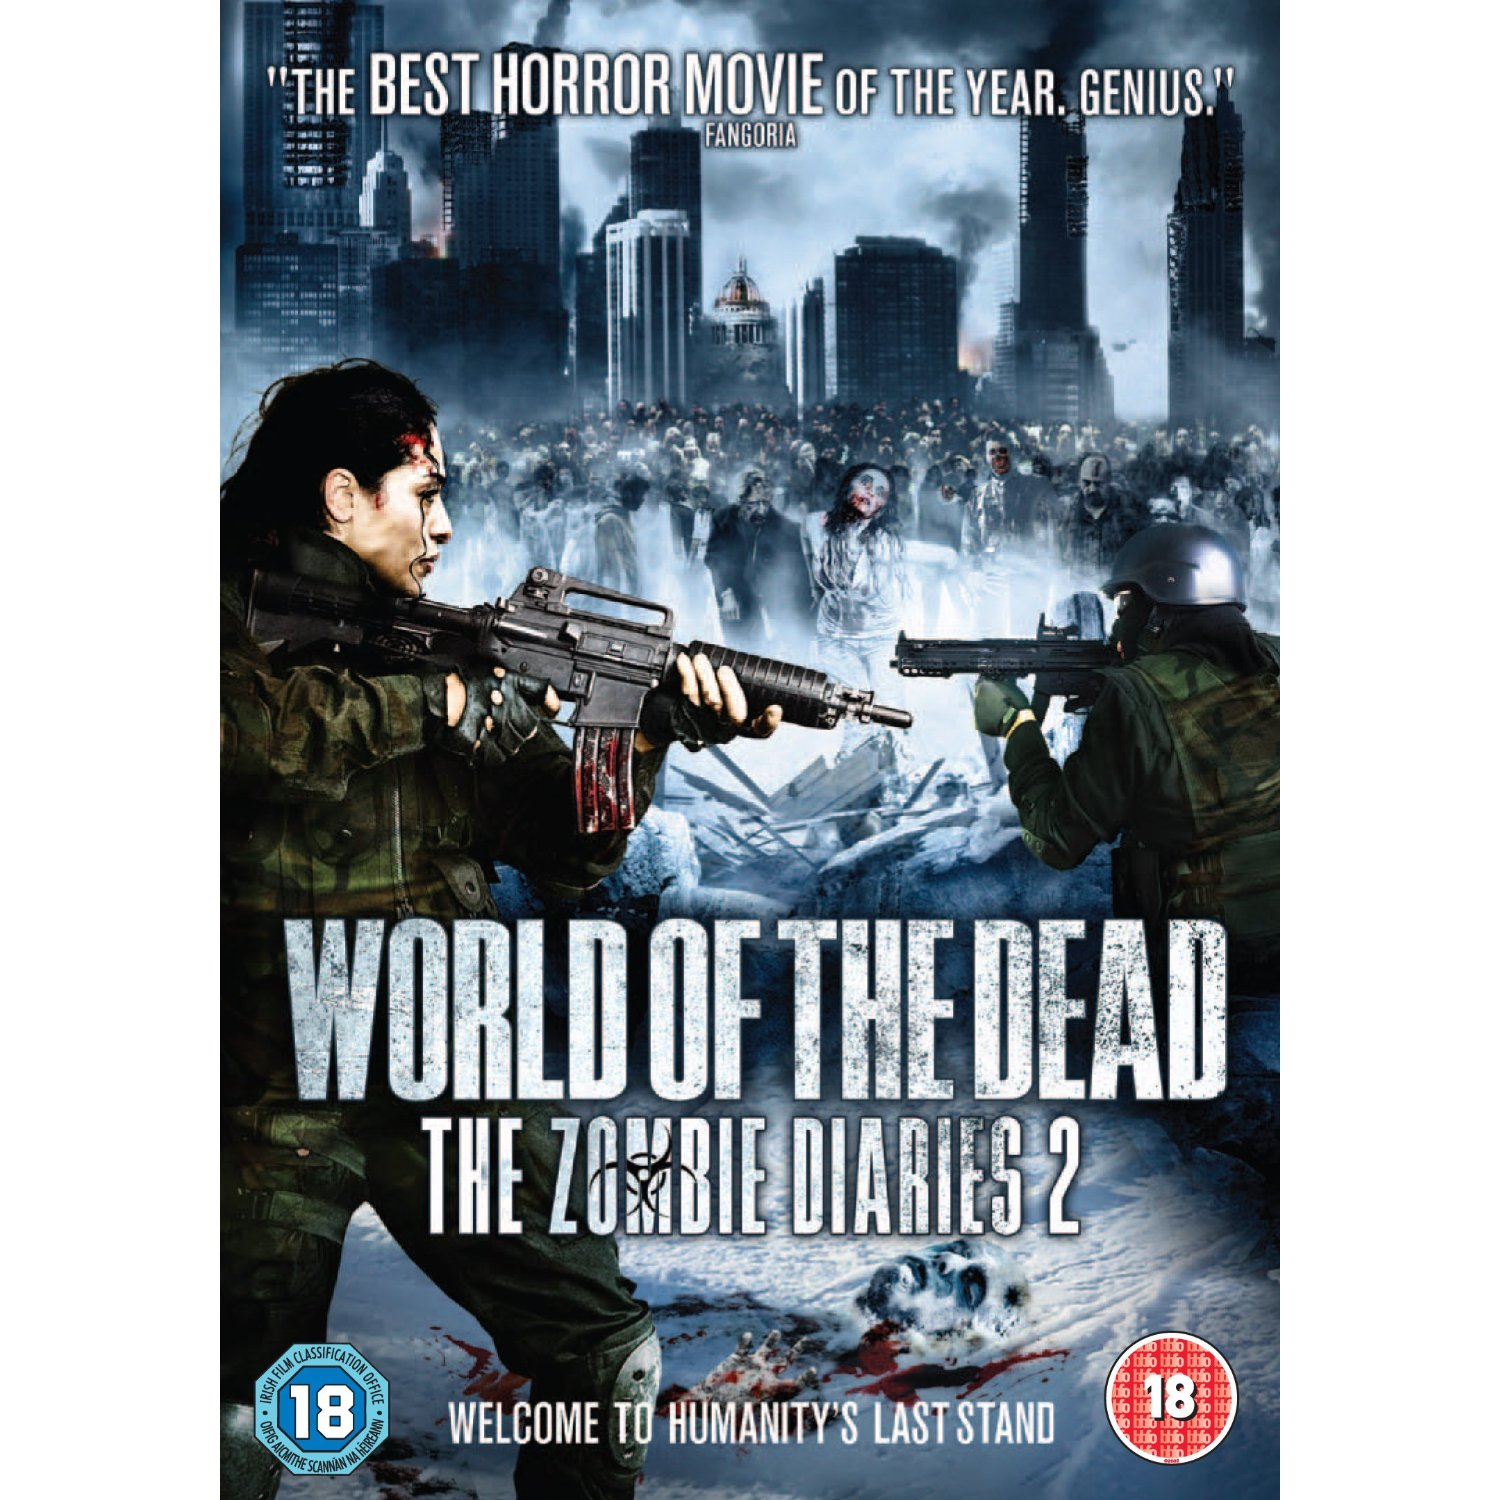 World of the Dead: The Zombie Diaries (2011)